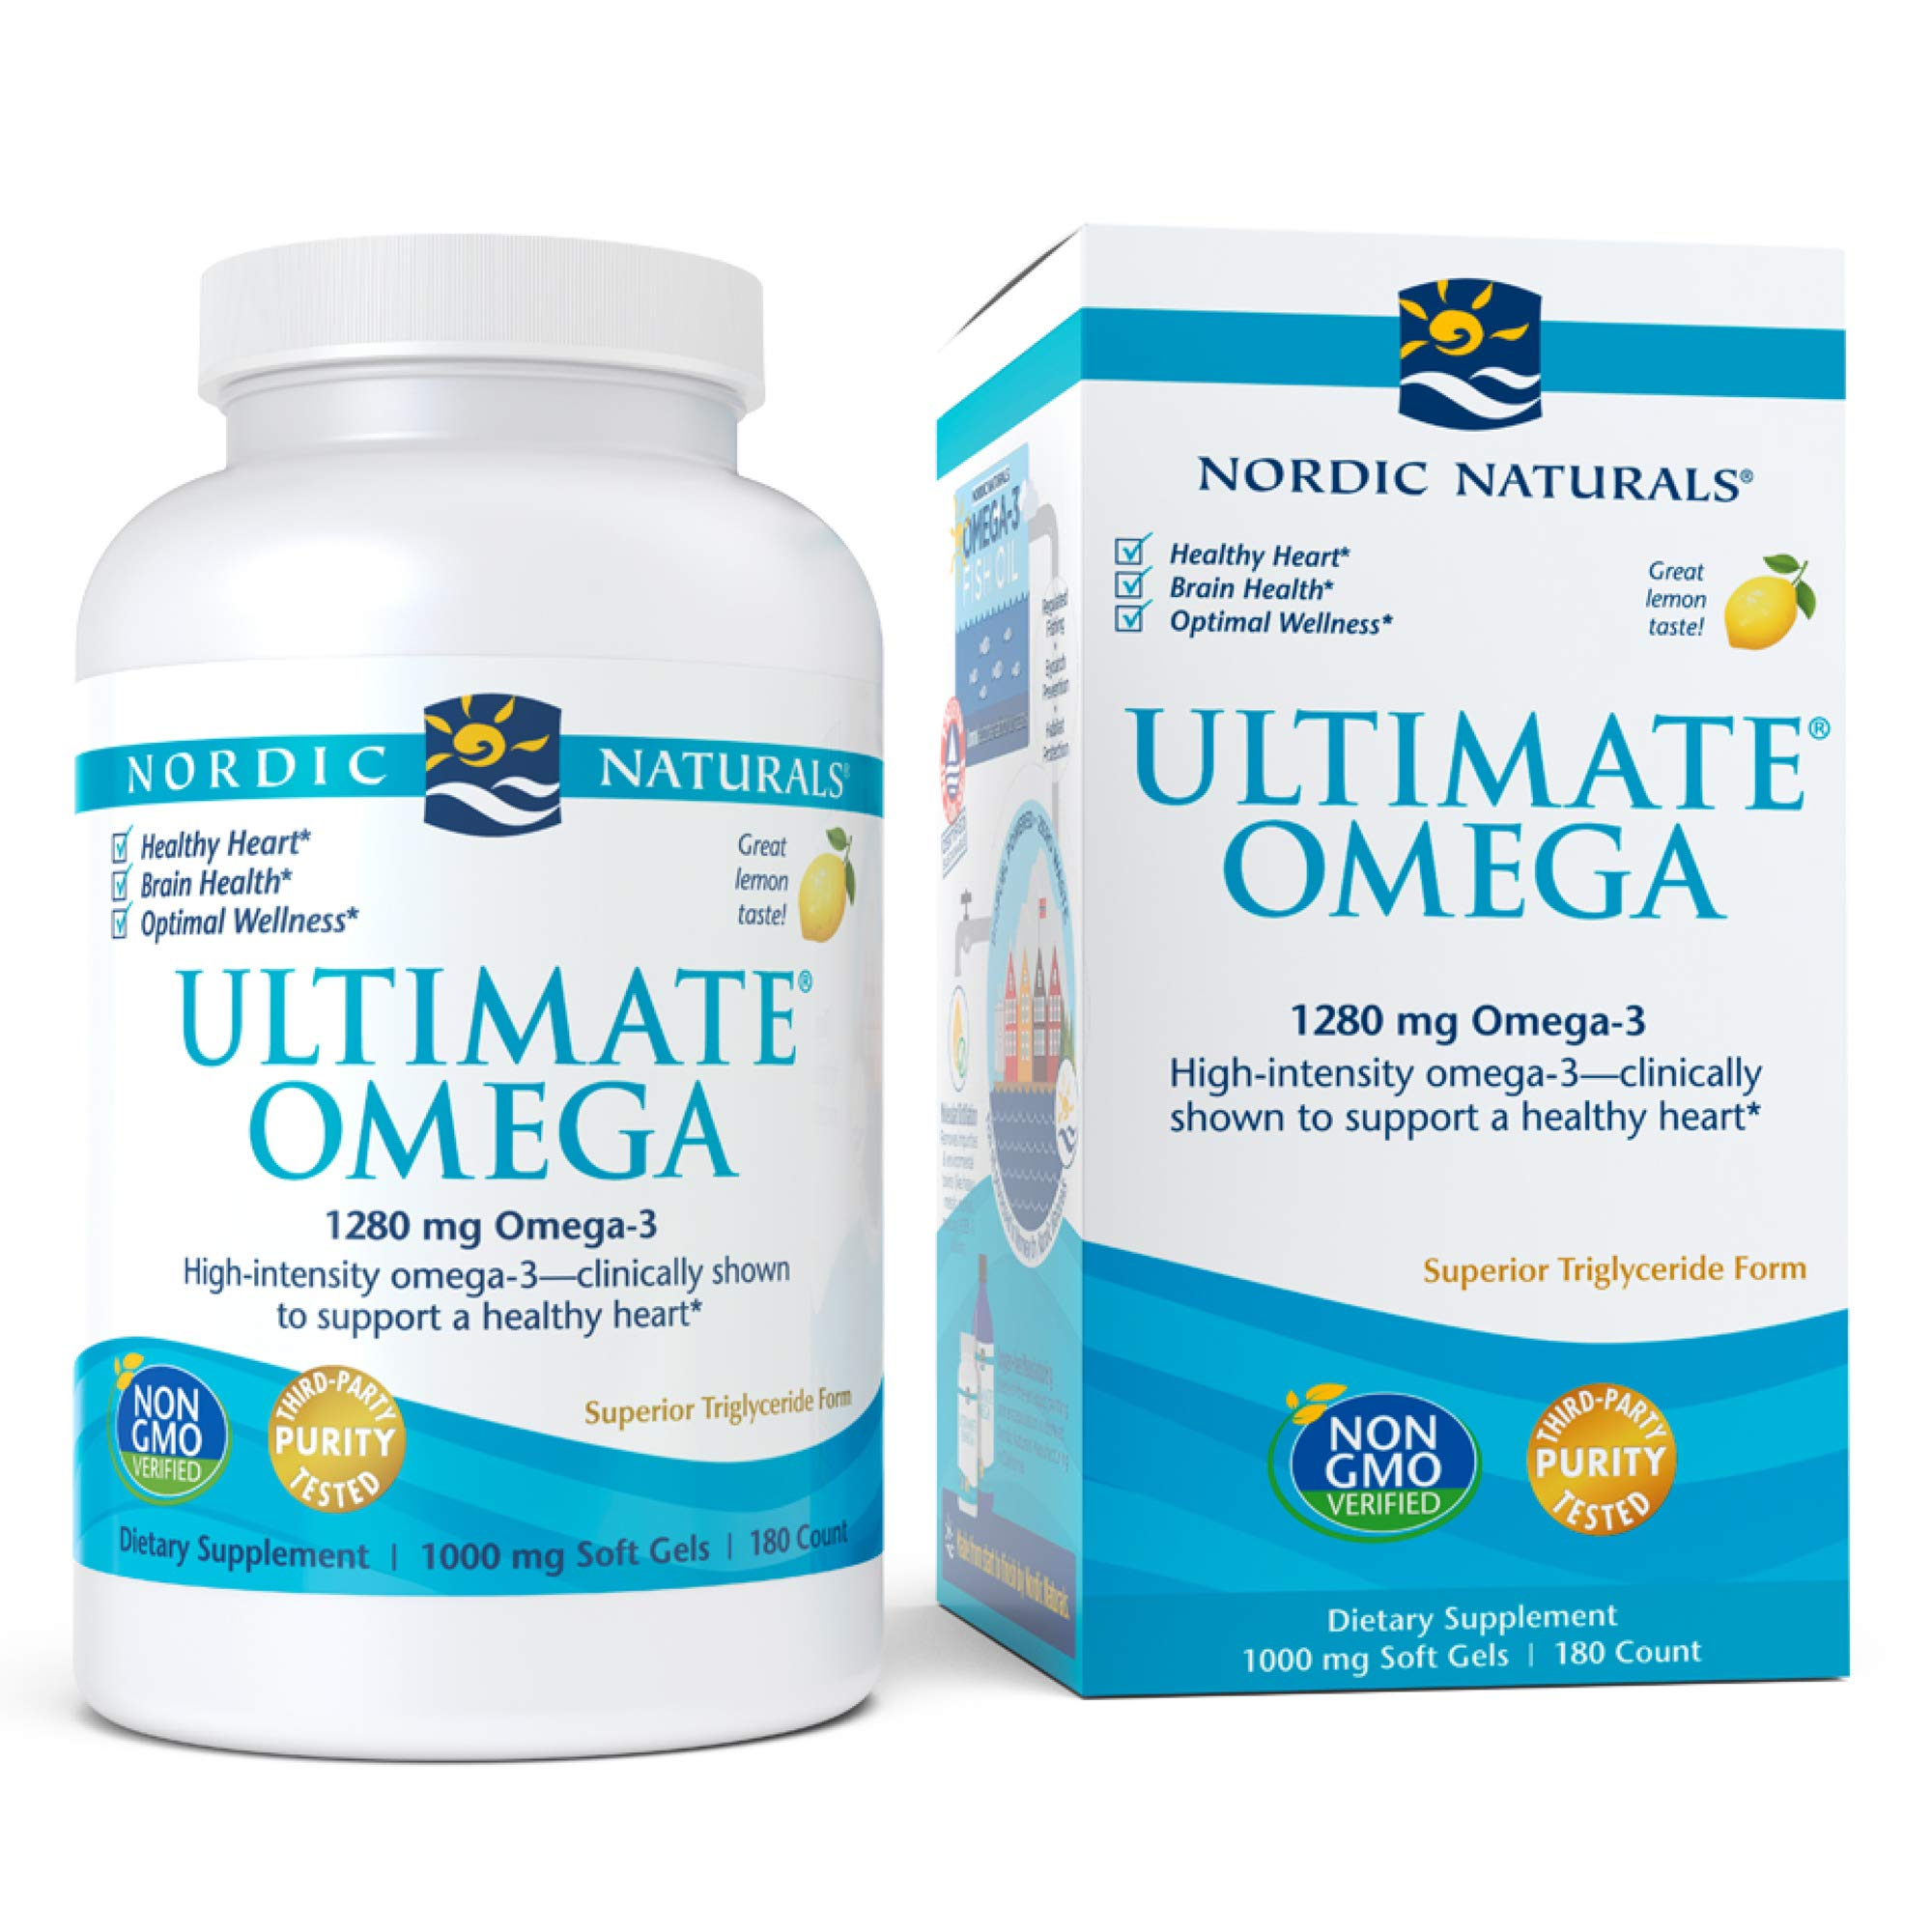 Nordic Naturals, Ultimate Omega, Fish Oil Supplement with Omega-3 DHA and EPA, Supports Heart Health and Brain Development, Burpless Lemon Flavor, (90 Servings) 180 Soft gels by Nordic Naturals